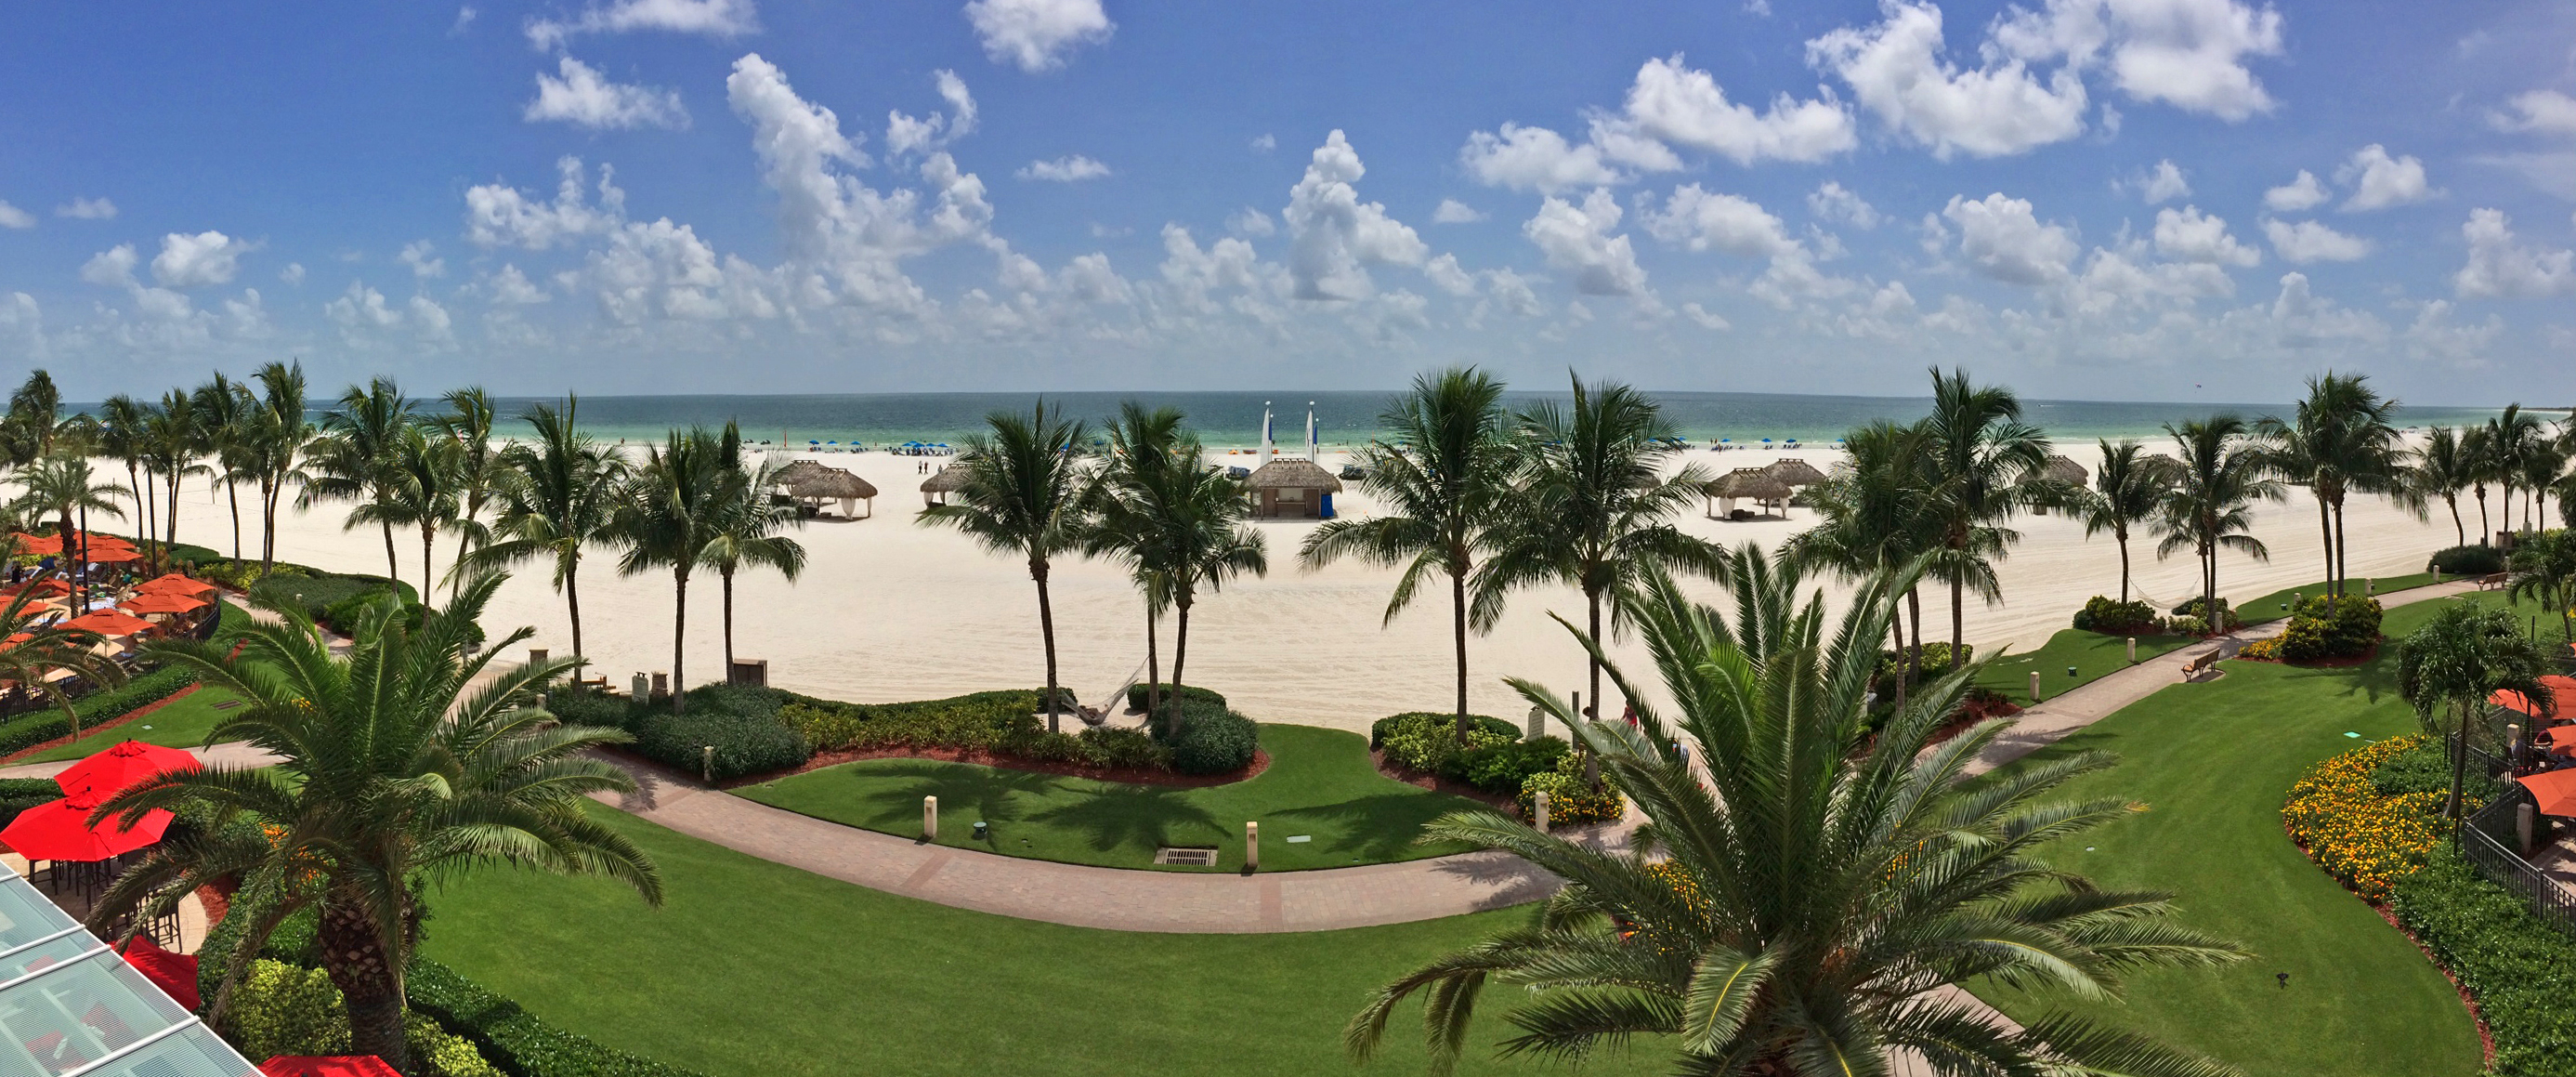 Marco Island Marriott Beach Resort Review